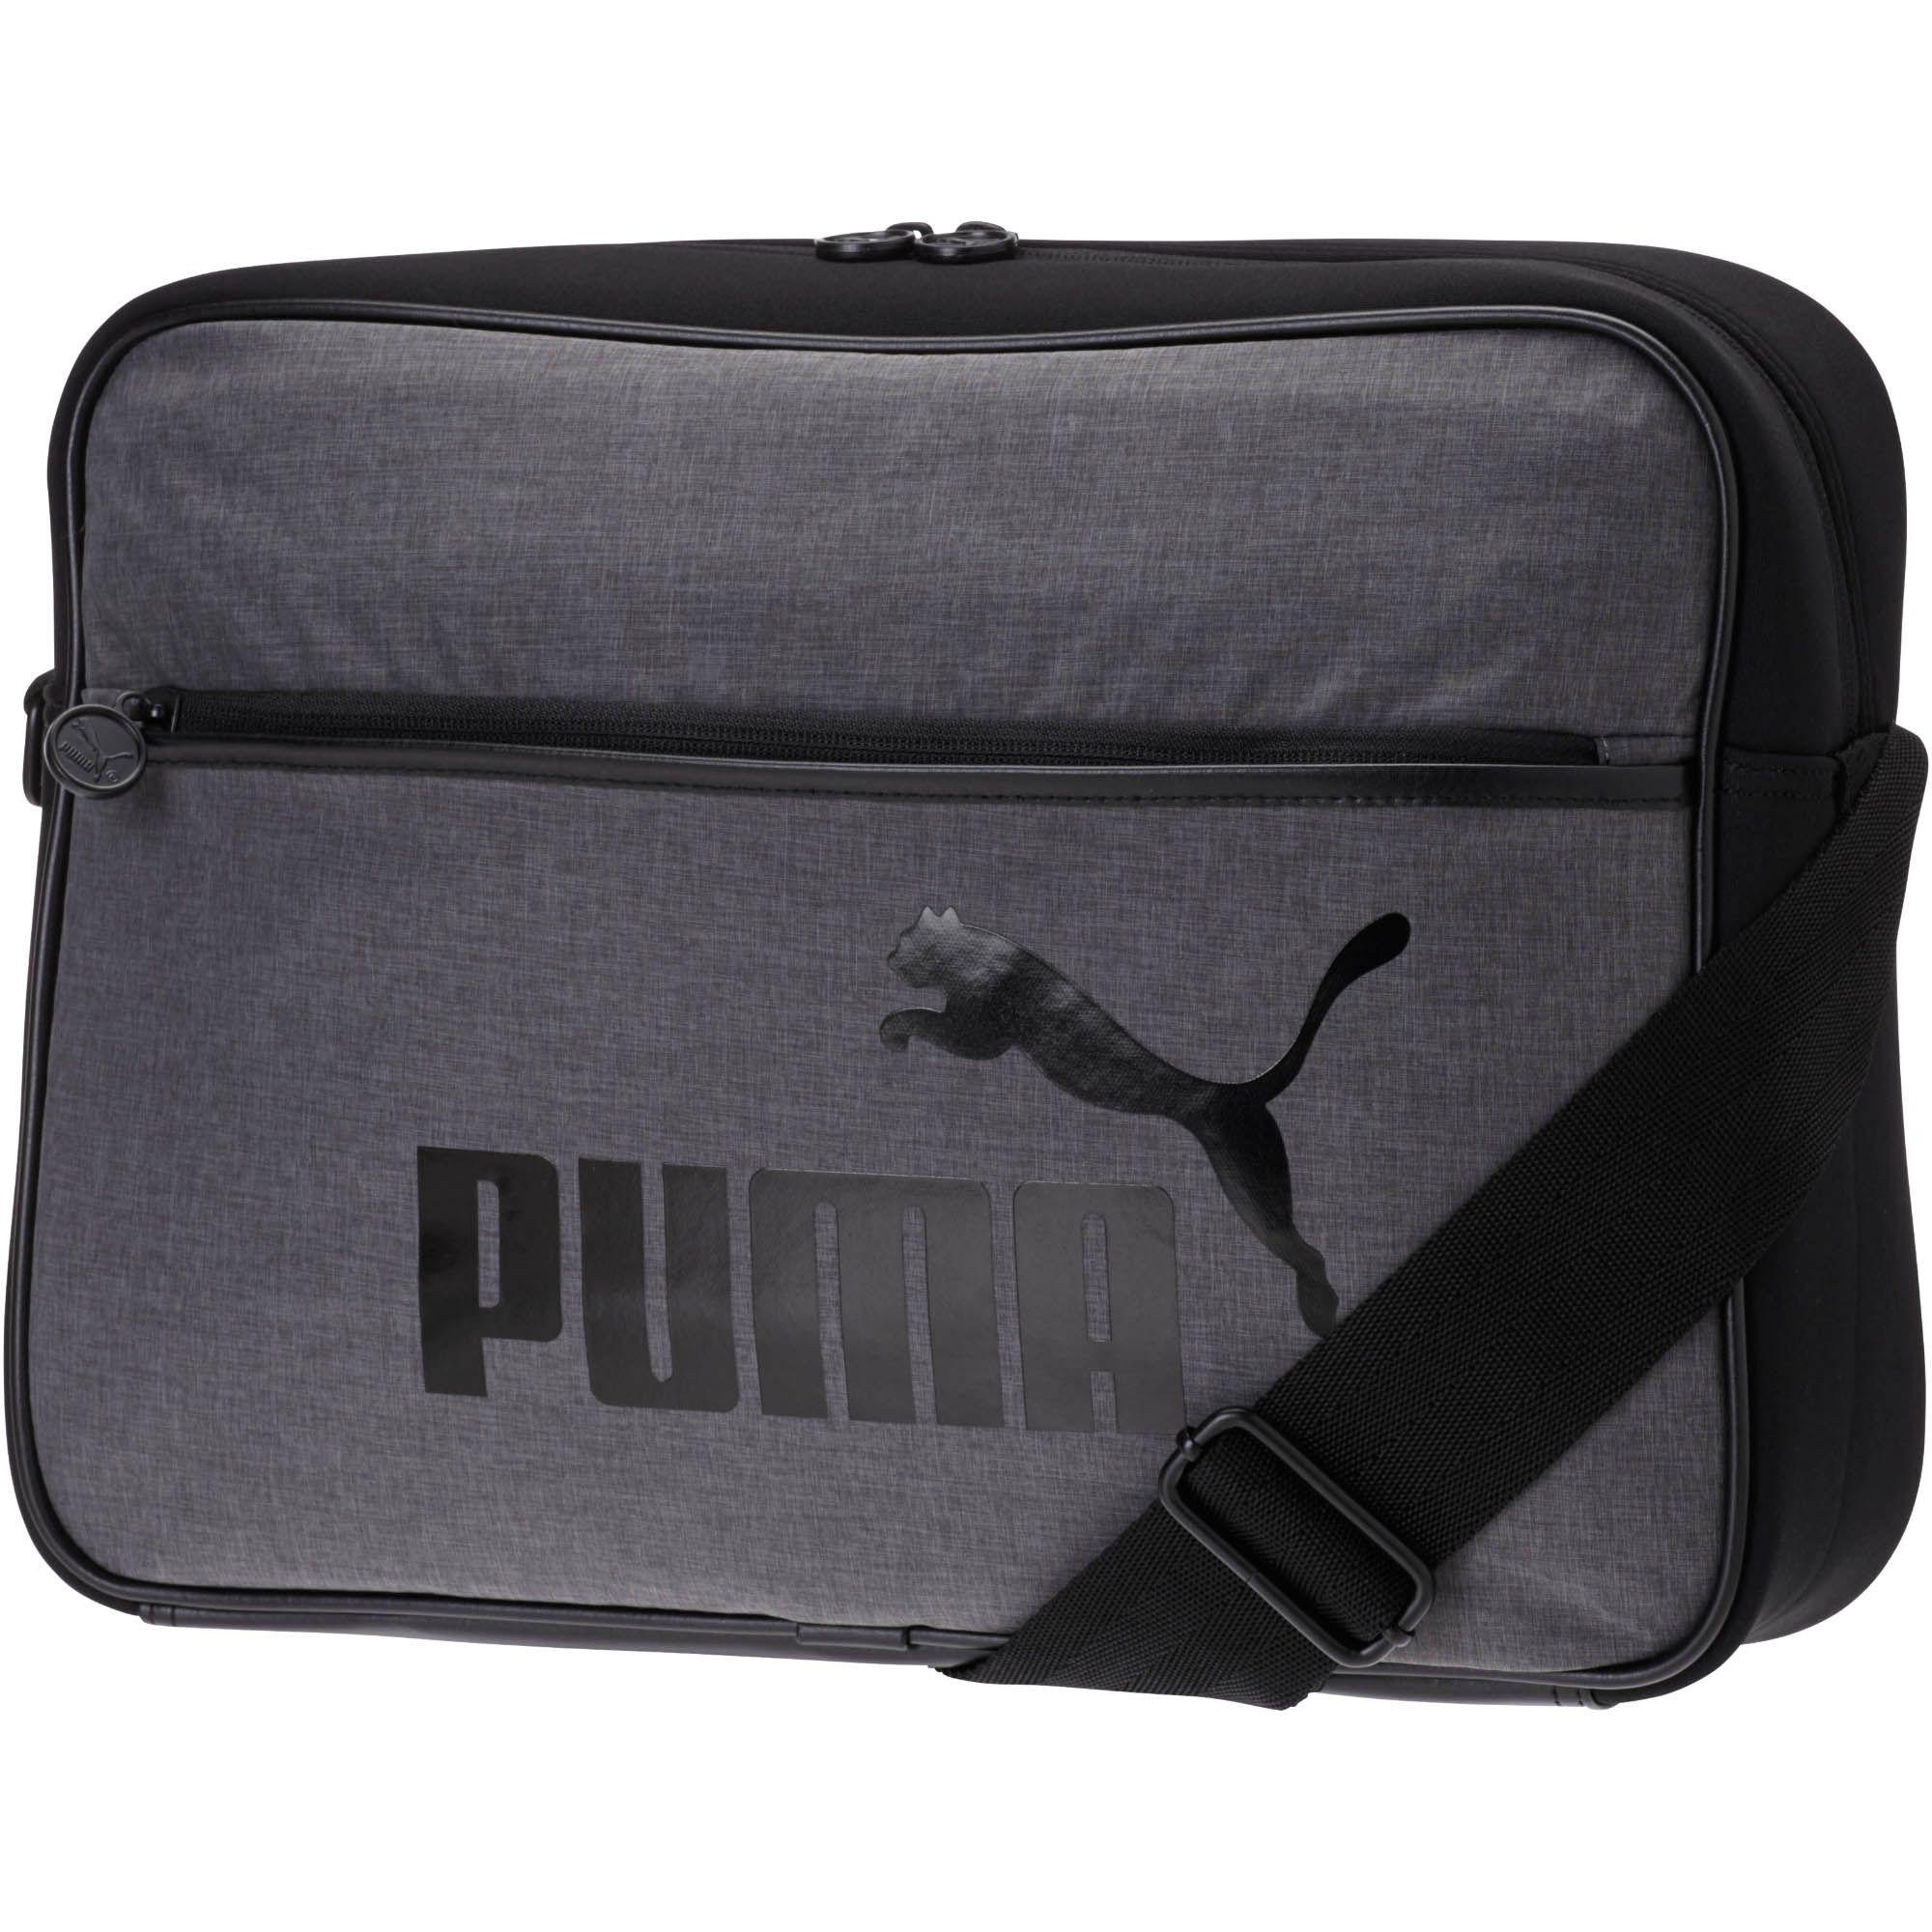 45eb021c4e0 PUMA Heritage Shoulder Bag in Black for Men - Lyst